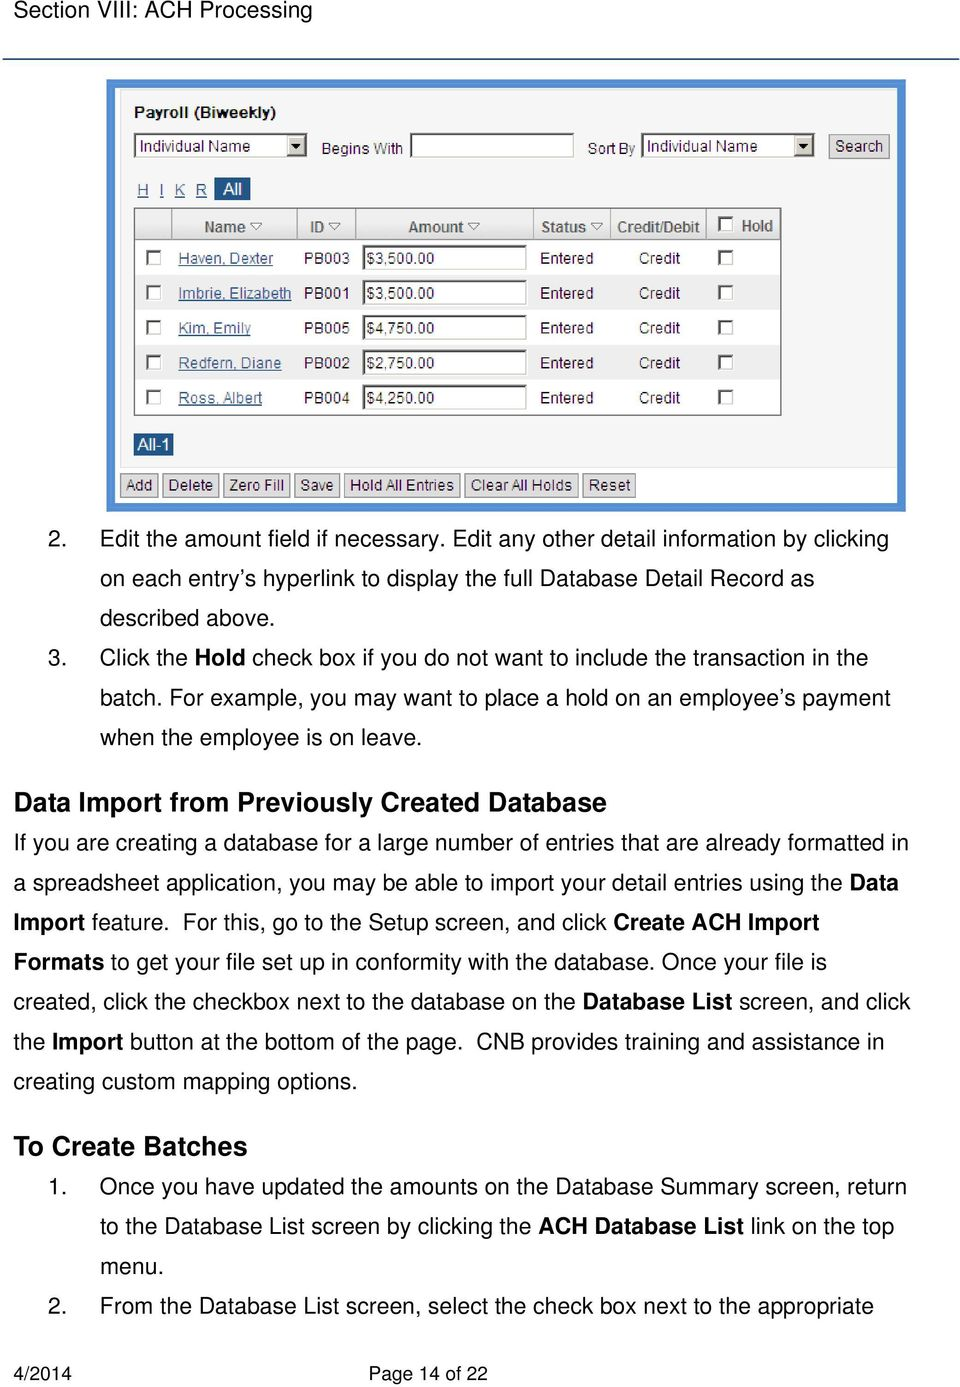 Data Import from Previously Created Database If you are creating a database for a large number of entries that are already formatted in a spreadsheet application, you may be able to import your